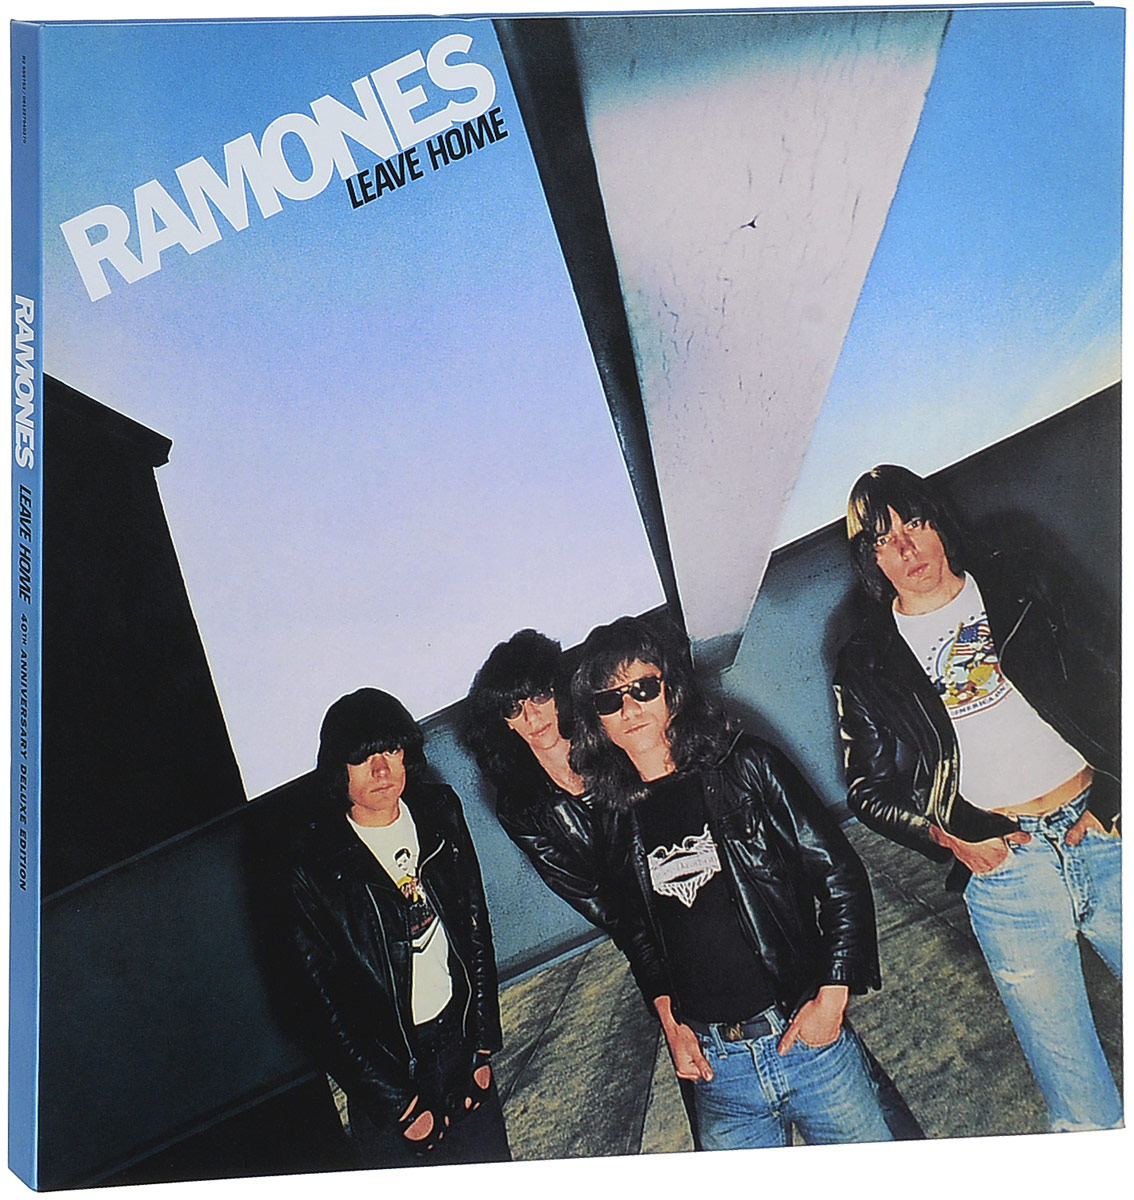 Ramones. Leave Home (40Th Anniversary) (LP + 3 CD) odessey and oracle 40th anniversary live concert